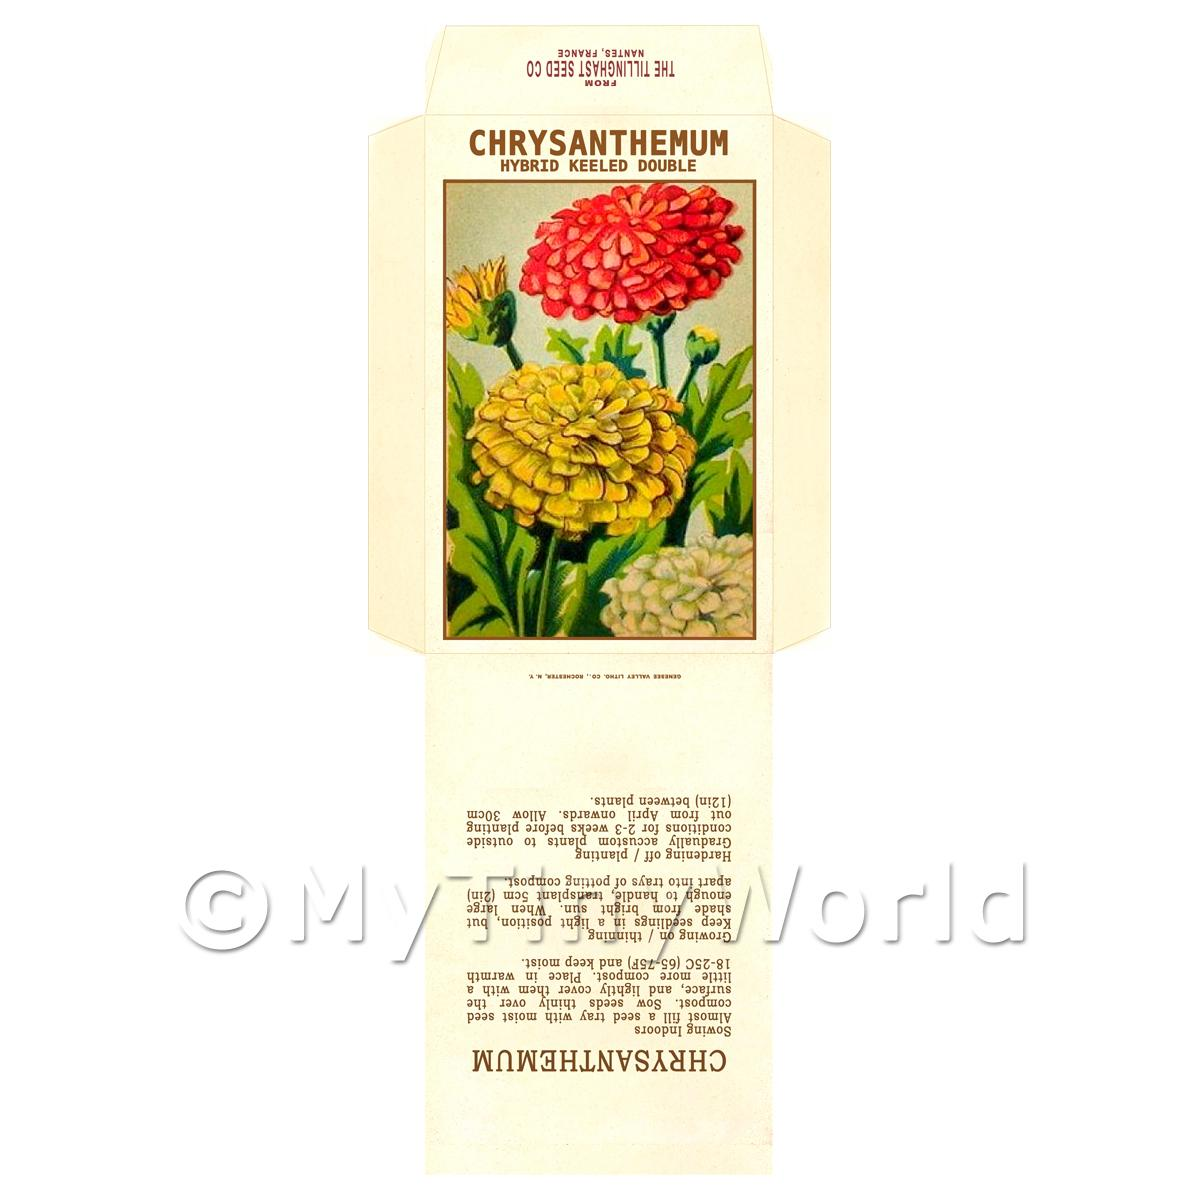 Hybrid Keeled Double Chrysanthemum Dolls House Miniature Seed Packet